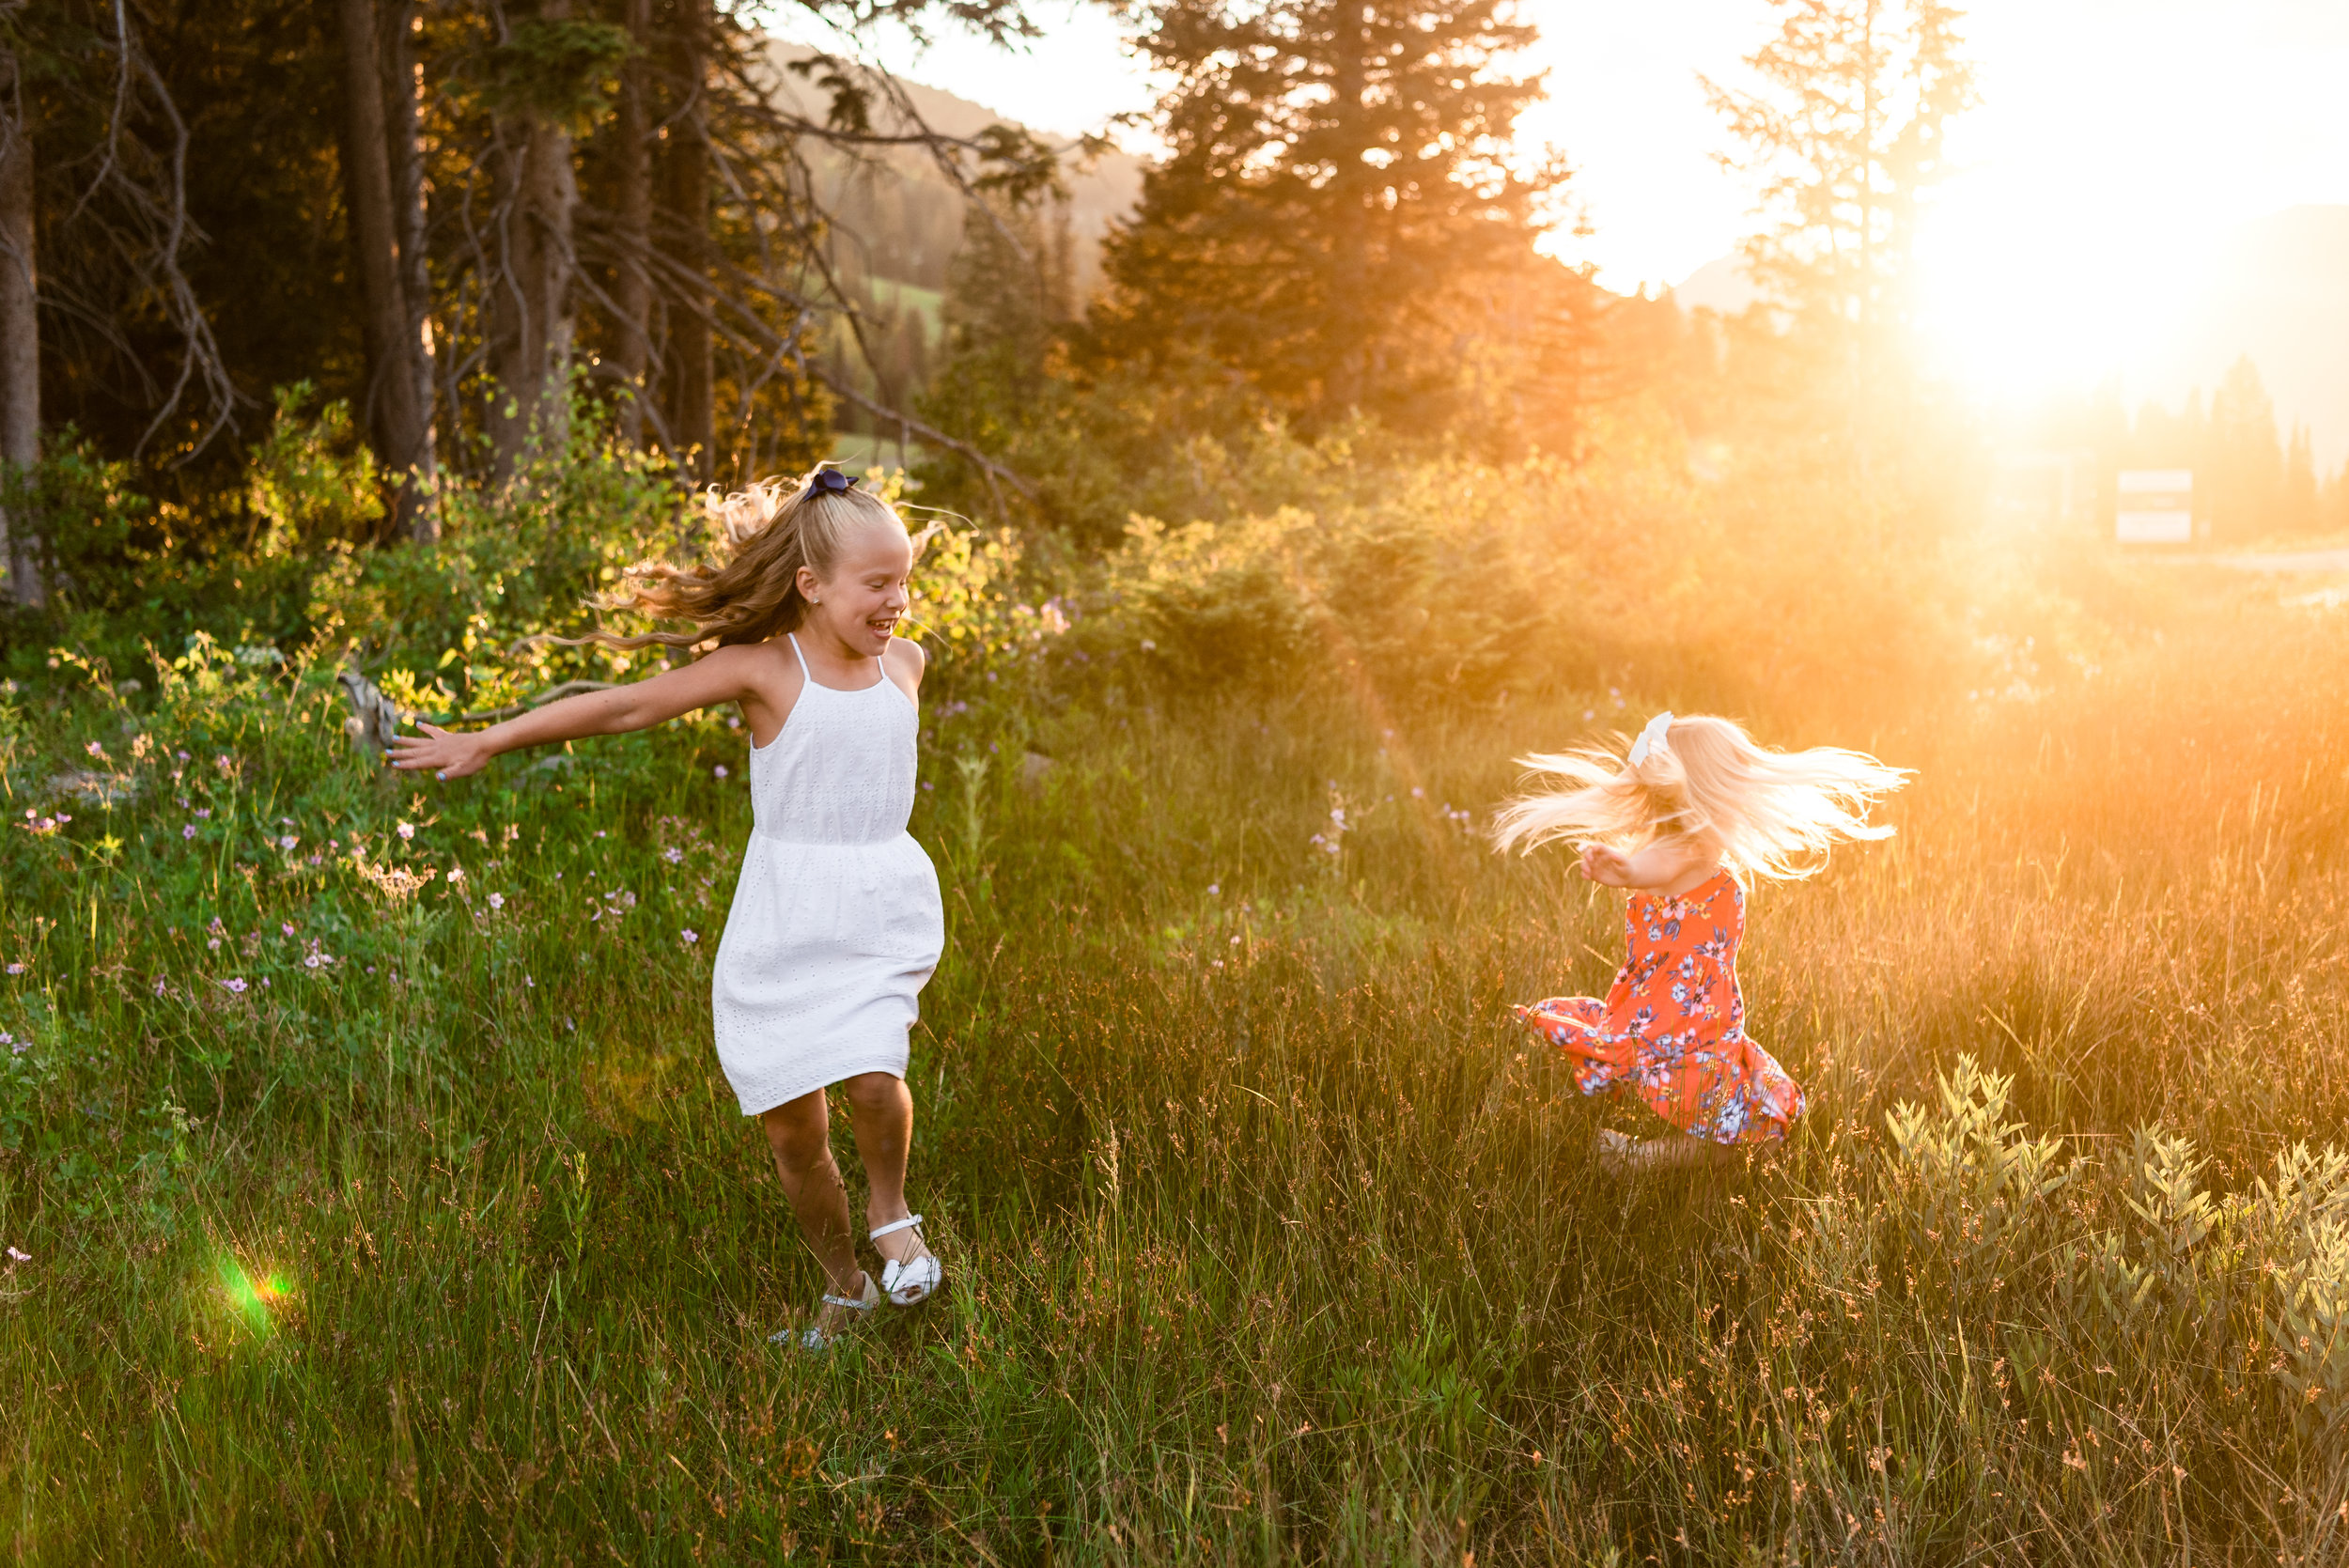 As we were packing up the sun took one last gorgeous peek through the canyon and I asked the girls if they would like to dance in the grass. It took zero convincing! They took off and we snagged a few more playful pictures in the last sun of the day. Hello summer sun, we love you!